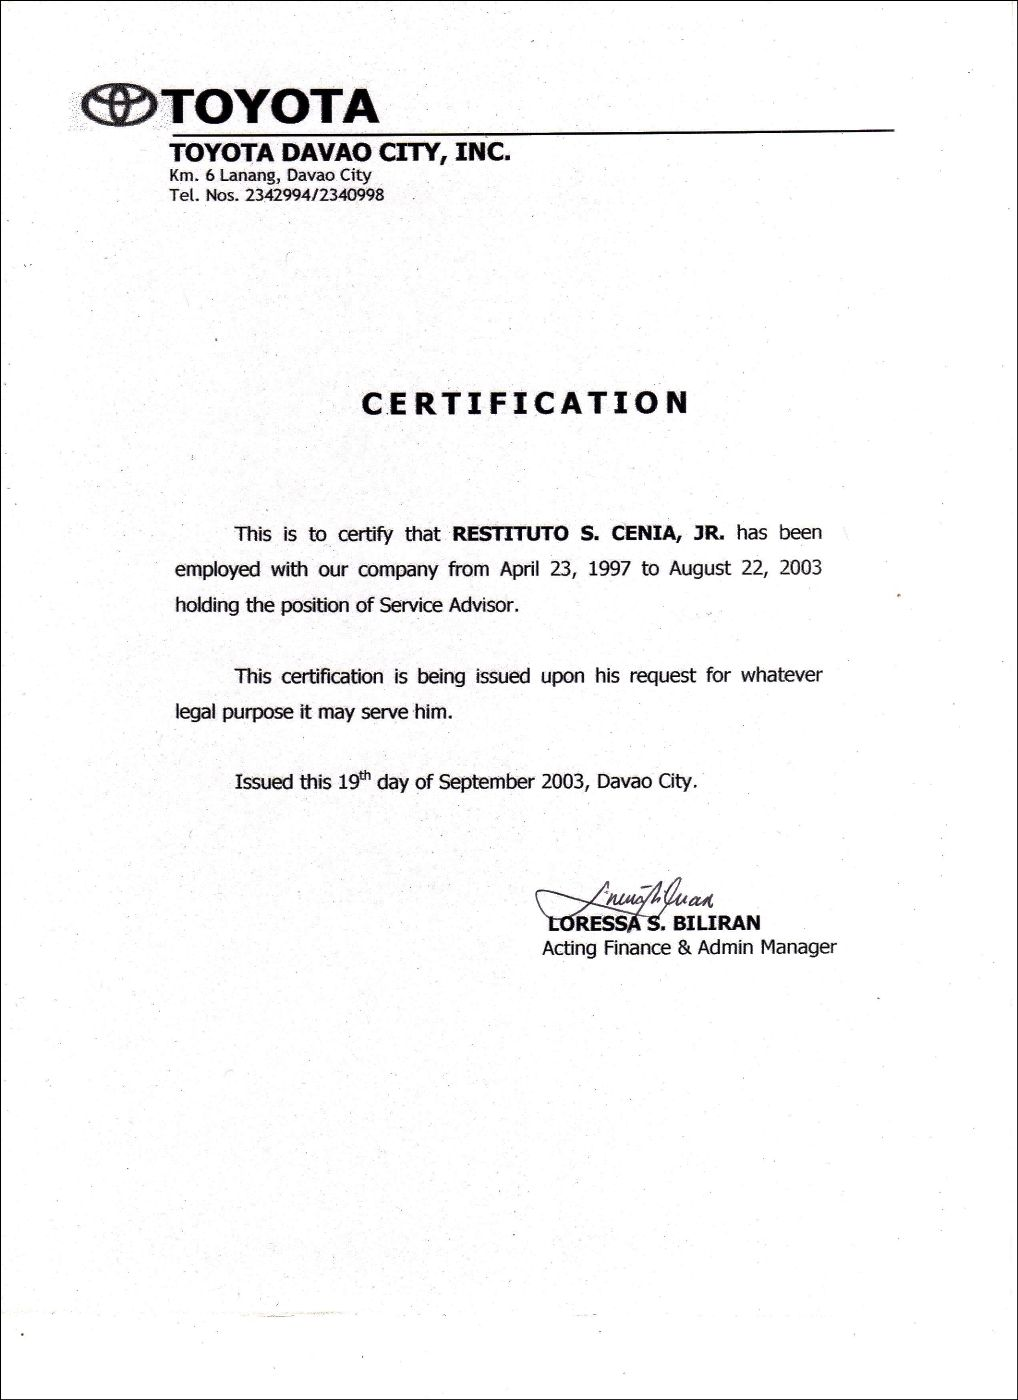 Employment certificate sample best templates pinterest employment certificate sample best templates pinterest employmentyota davao employmentg yelopaper Choice Image